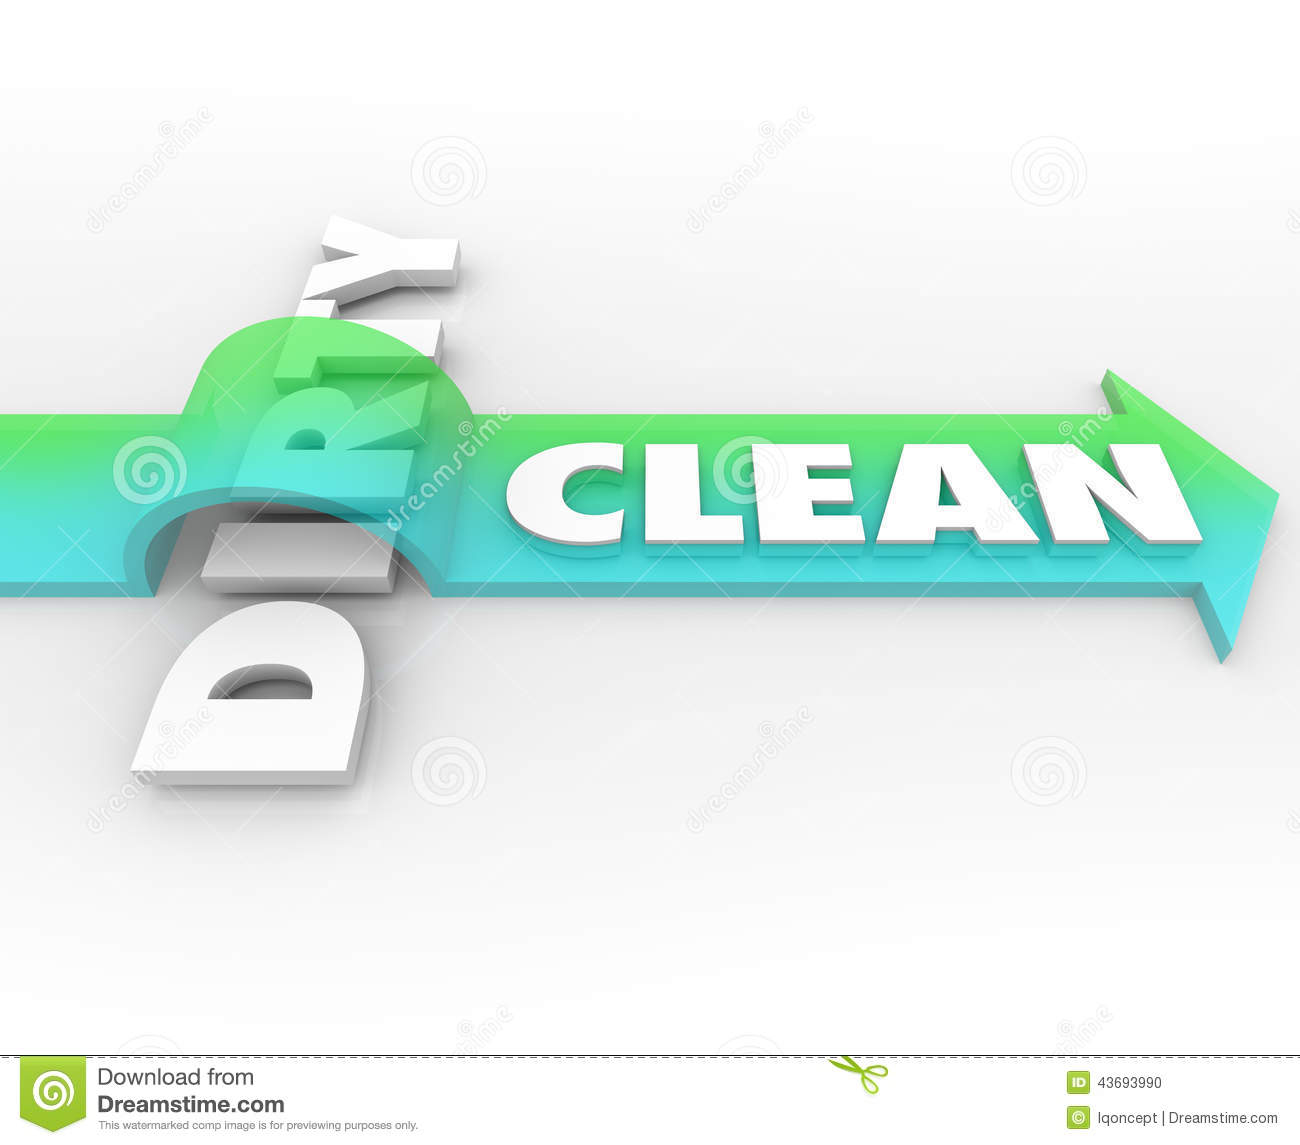 Clean Wholesome: Clean Vs Dirty Arrow Over Word Cleanliness Wins Stay Safe